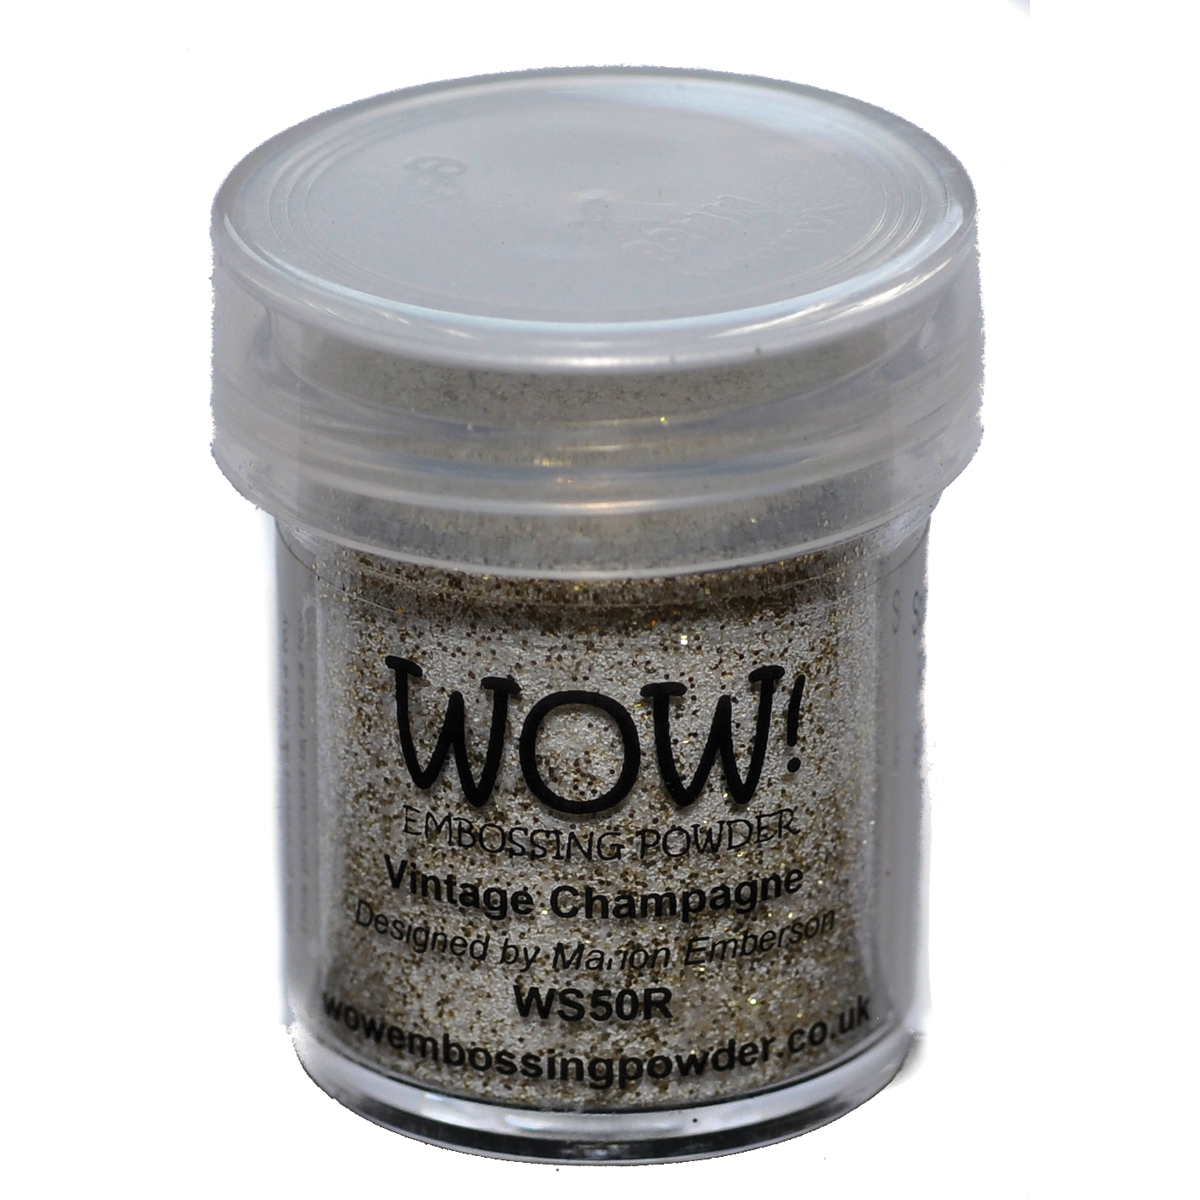 Vintage Champagne - WOW! Embossing Powder 15ml